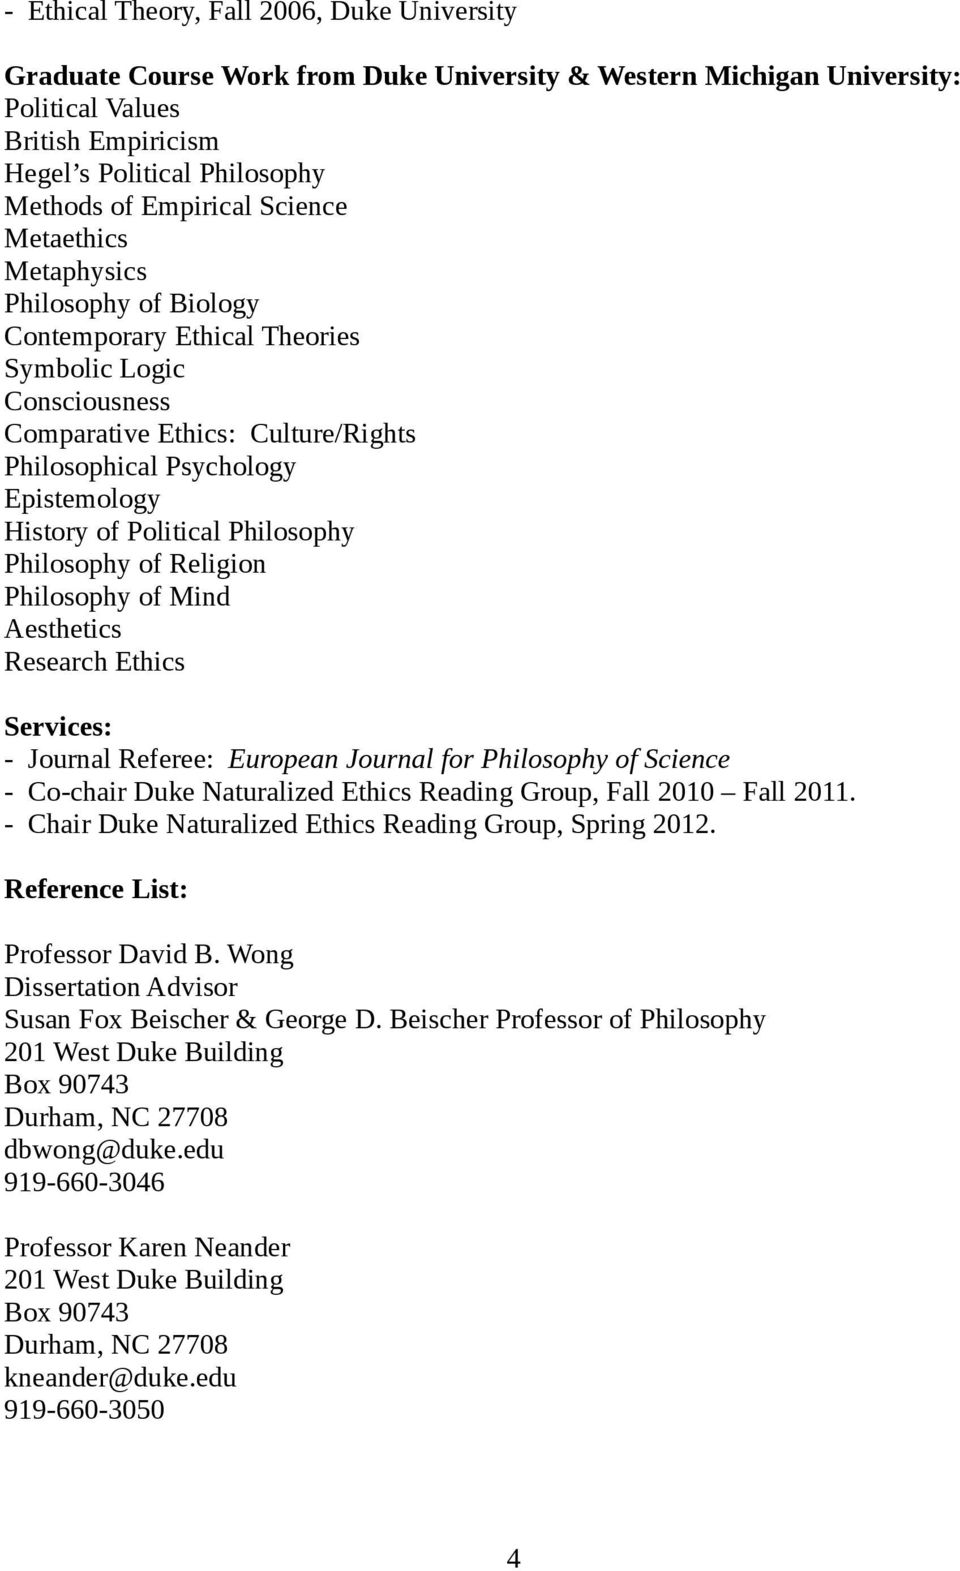 History of Political Philosophy Philosophy of Religion Philosophy of Mind Aesthetics Research Ethics Services: - Journal Referee: European Journal for Philosophy of Science - Co-chair Duke